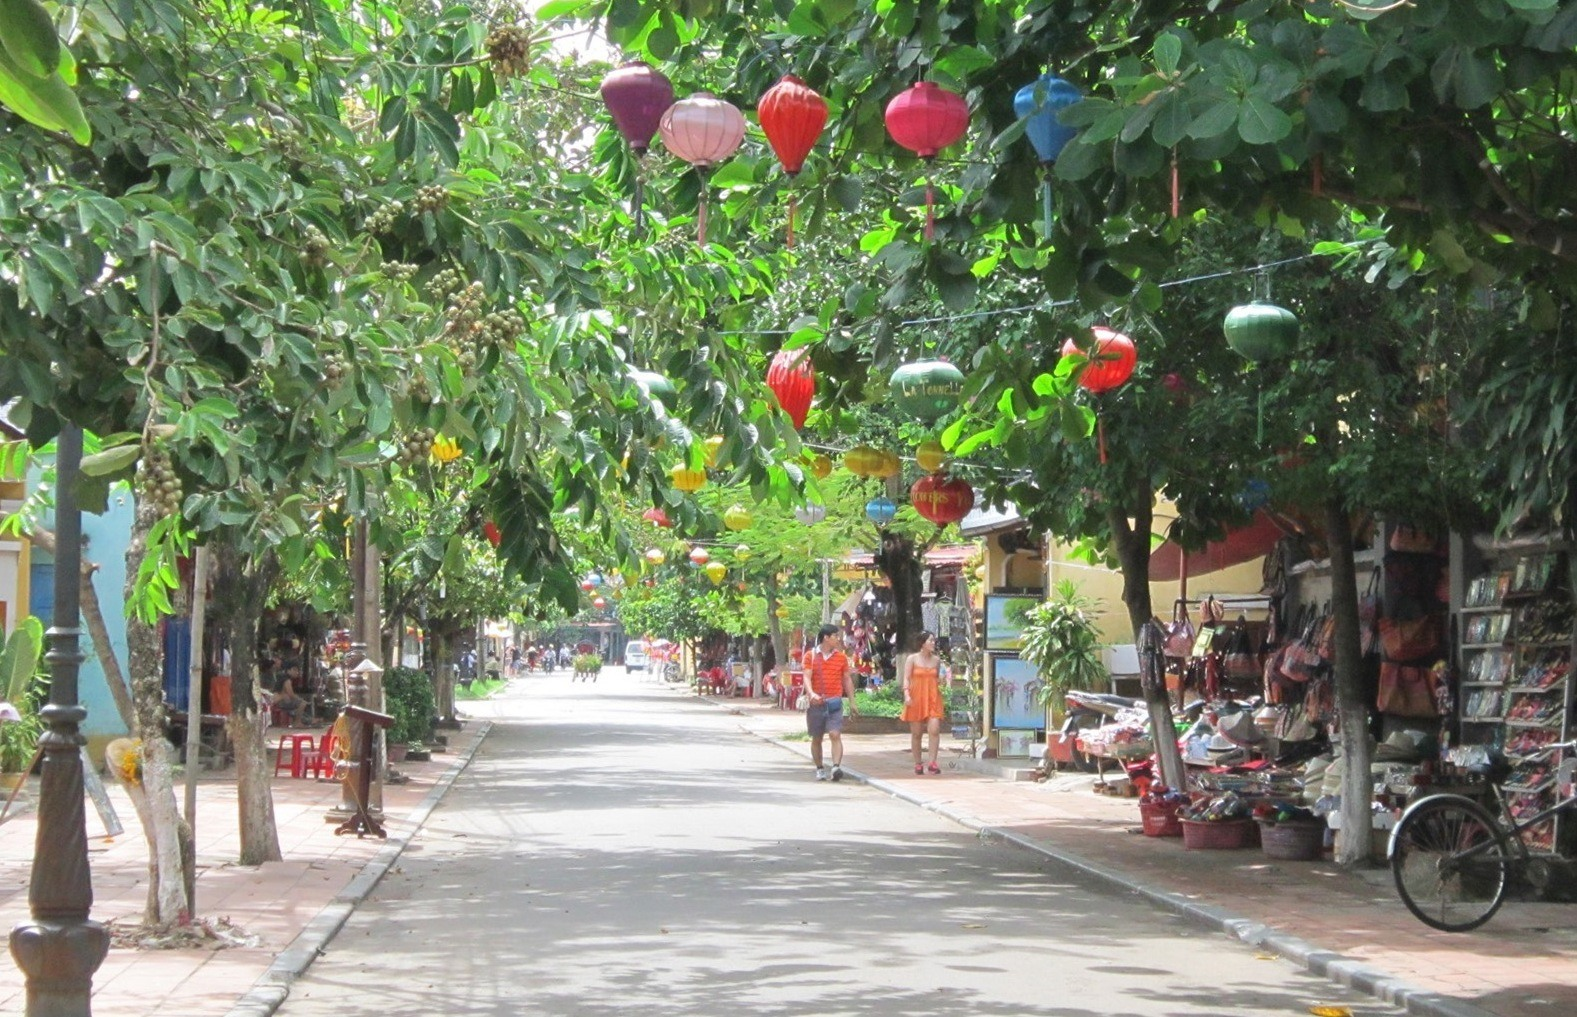 Peacefulness in Hoi An